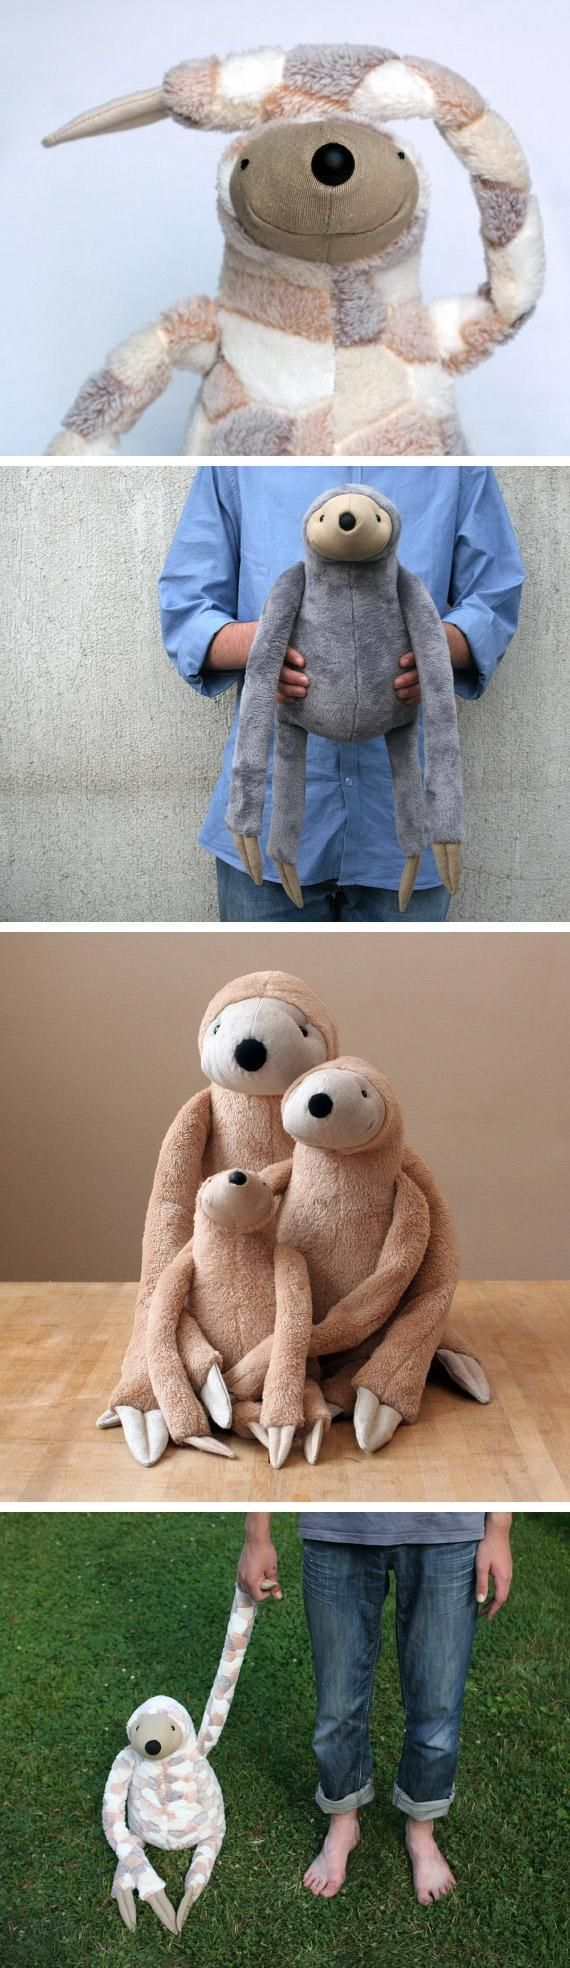 The Art Of Making Stuffed Toys - Bored Art Más